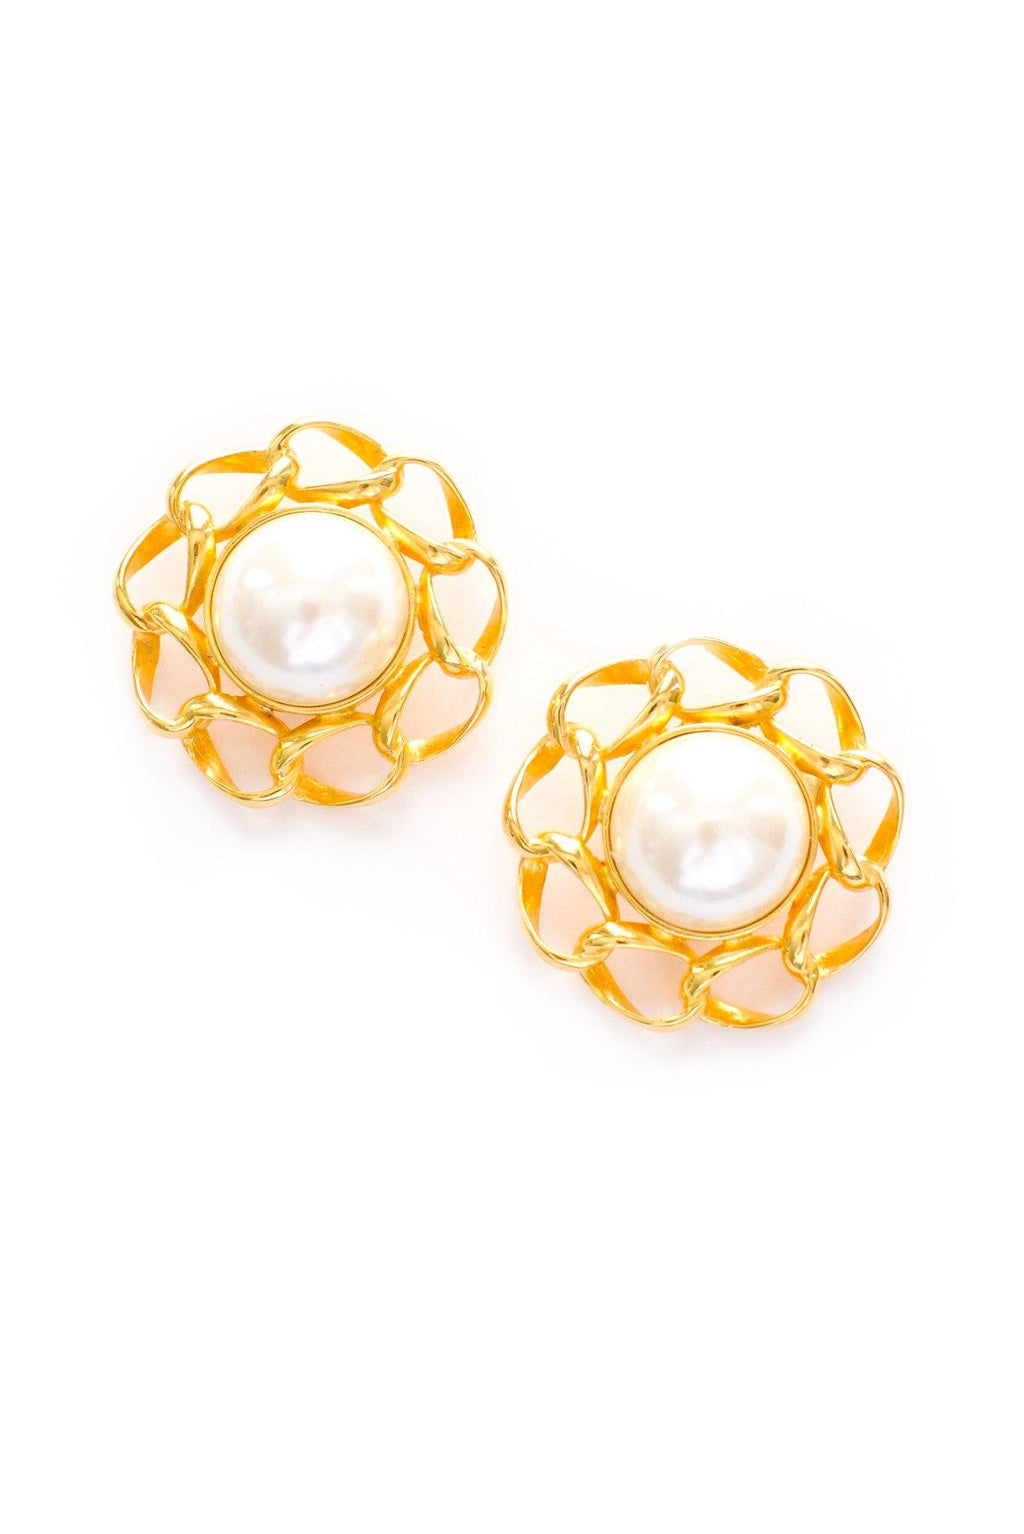 Chain Wrapped Pearl Clip-on Earrings